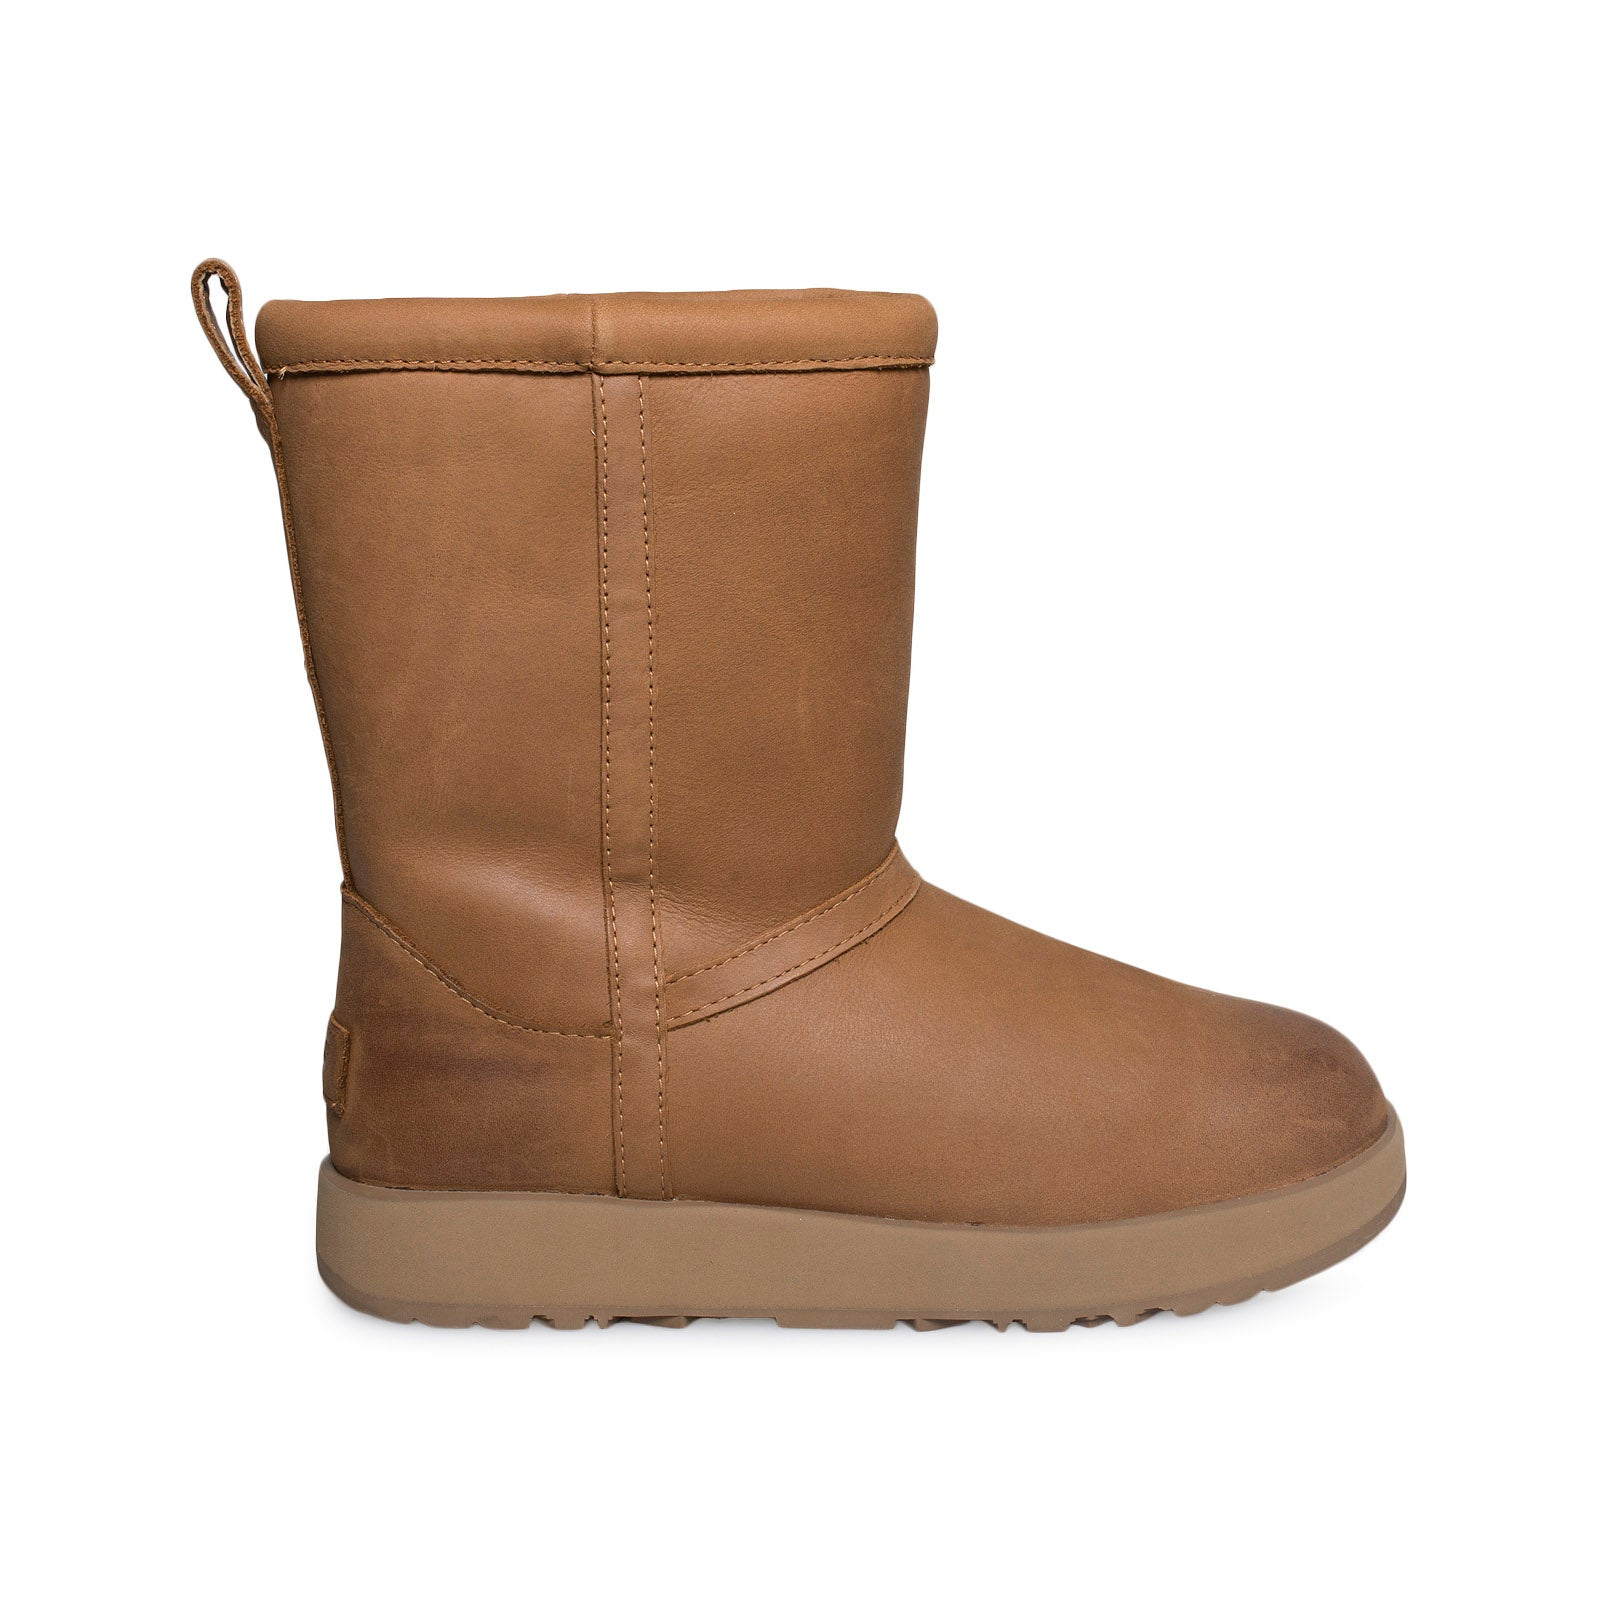 1f0ab8541aa UGG Classic Short Leather Waterproof Chestnut Boots - Women's